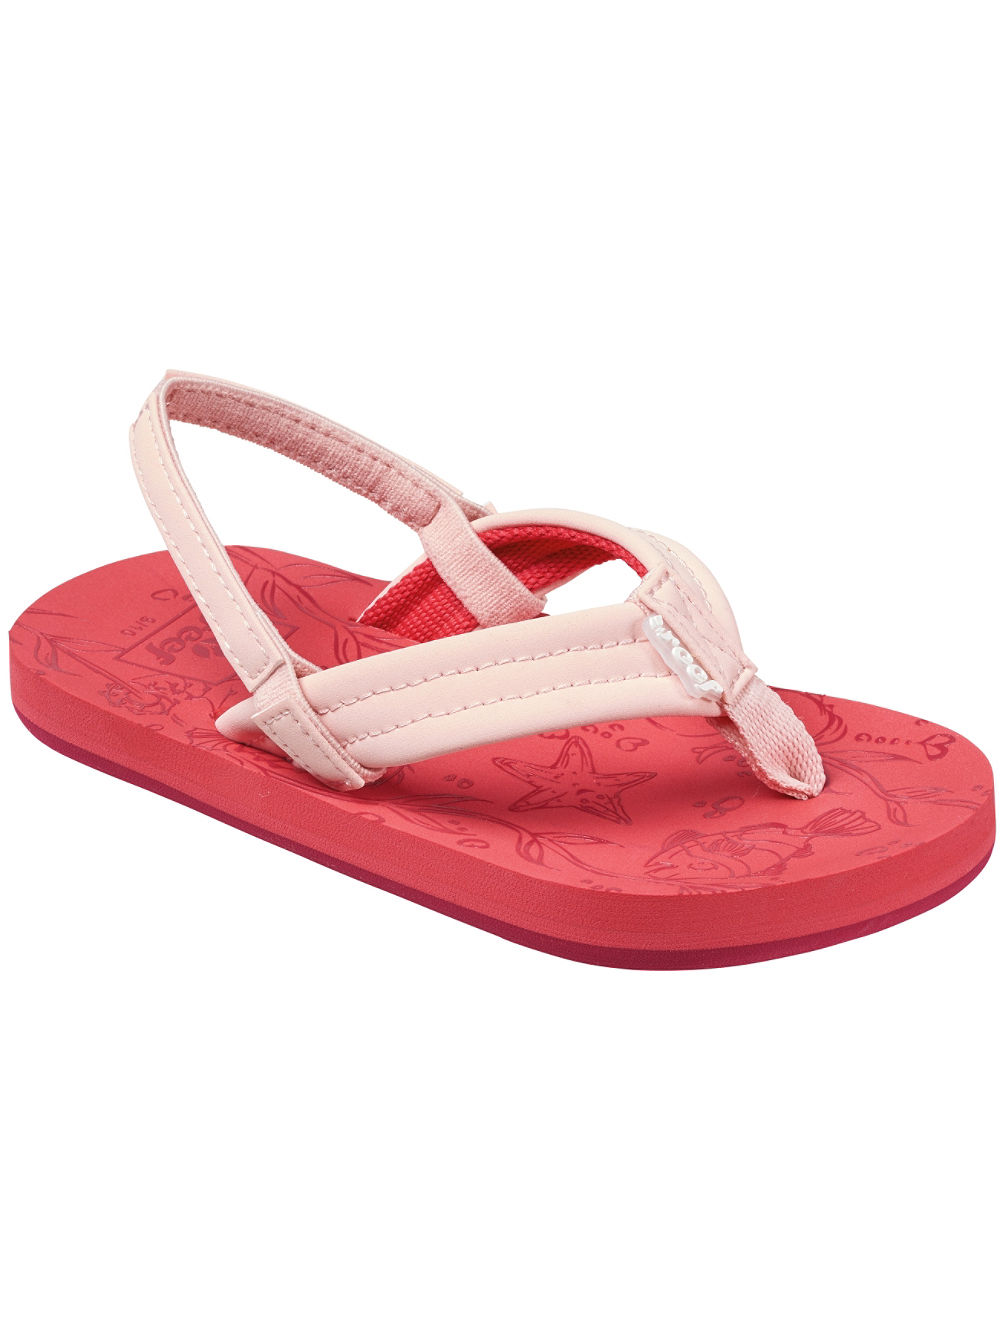 7c5e598cf341 Buy Reef Little Footprint Sandals Girls online at Blue Tomato